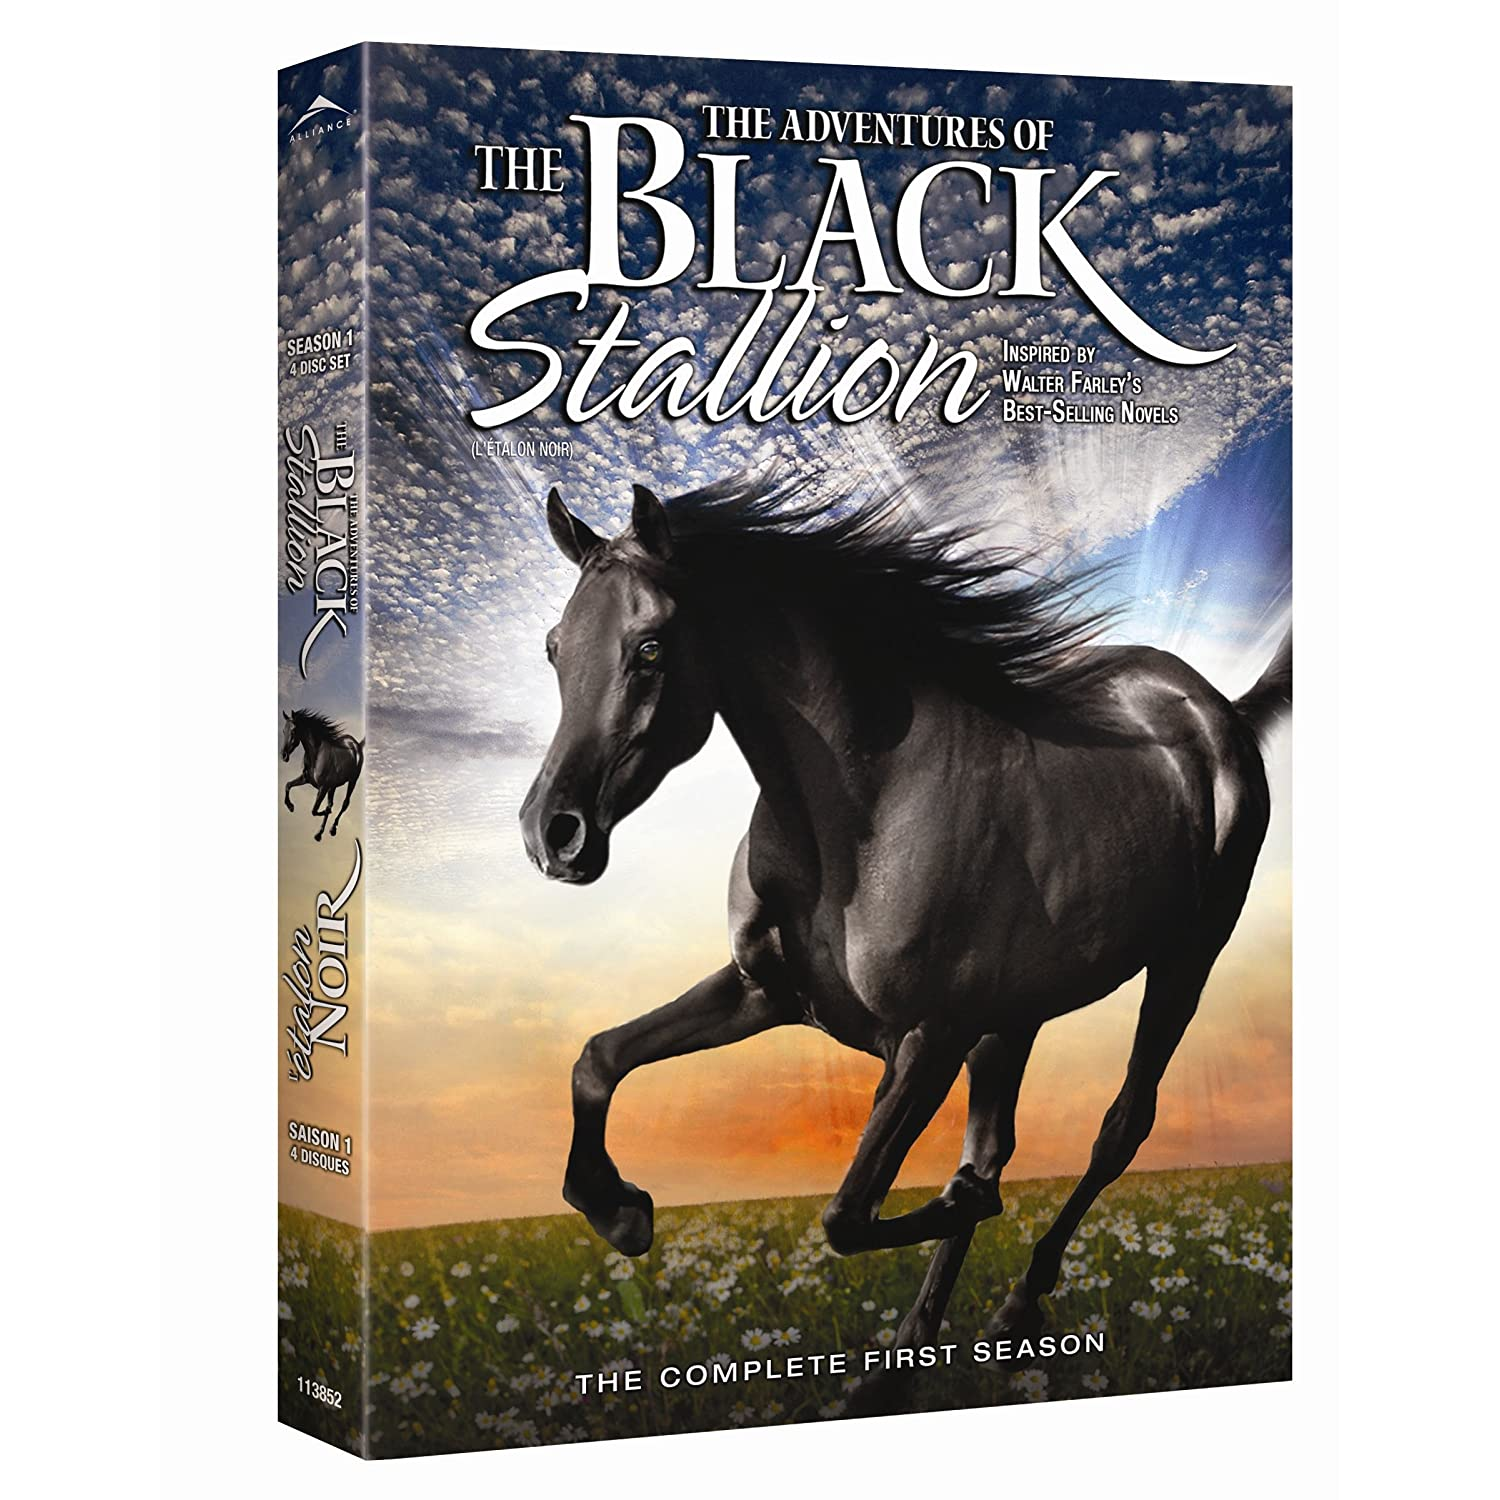 The Adventures of the Black Stallion